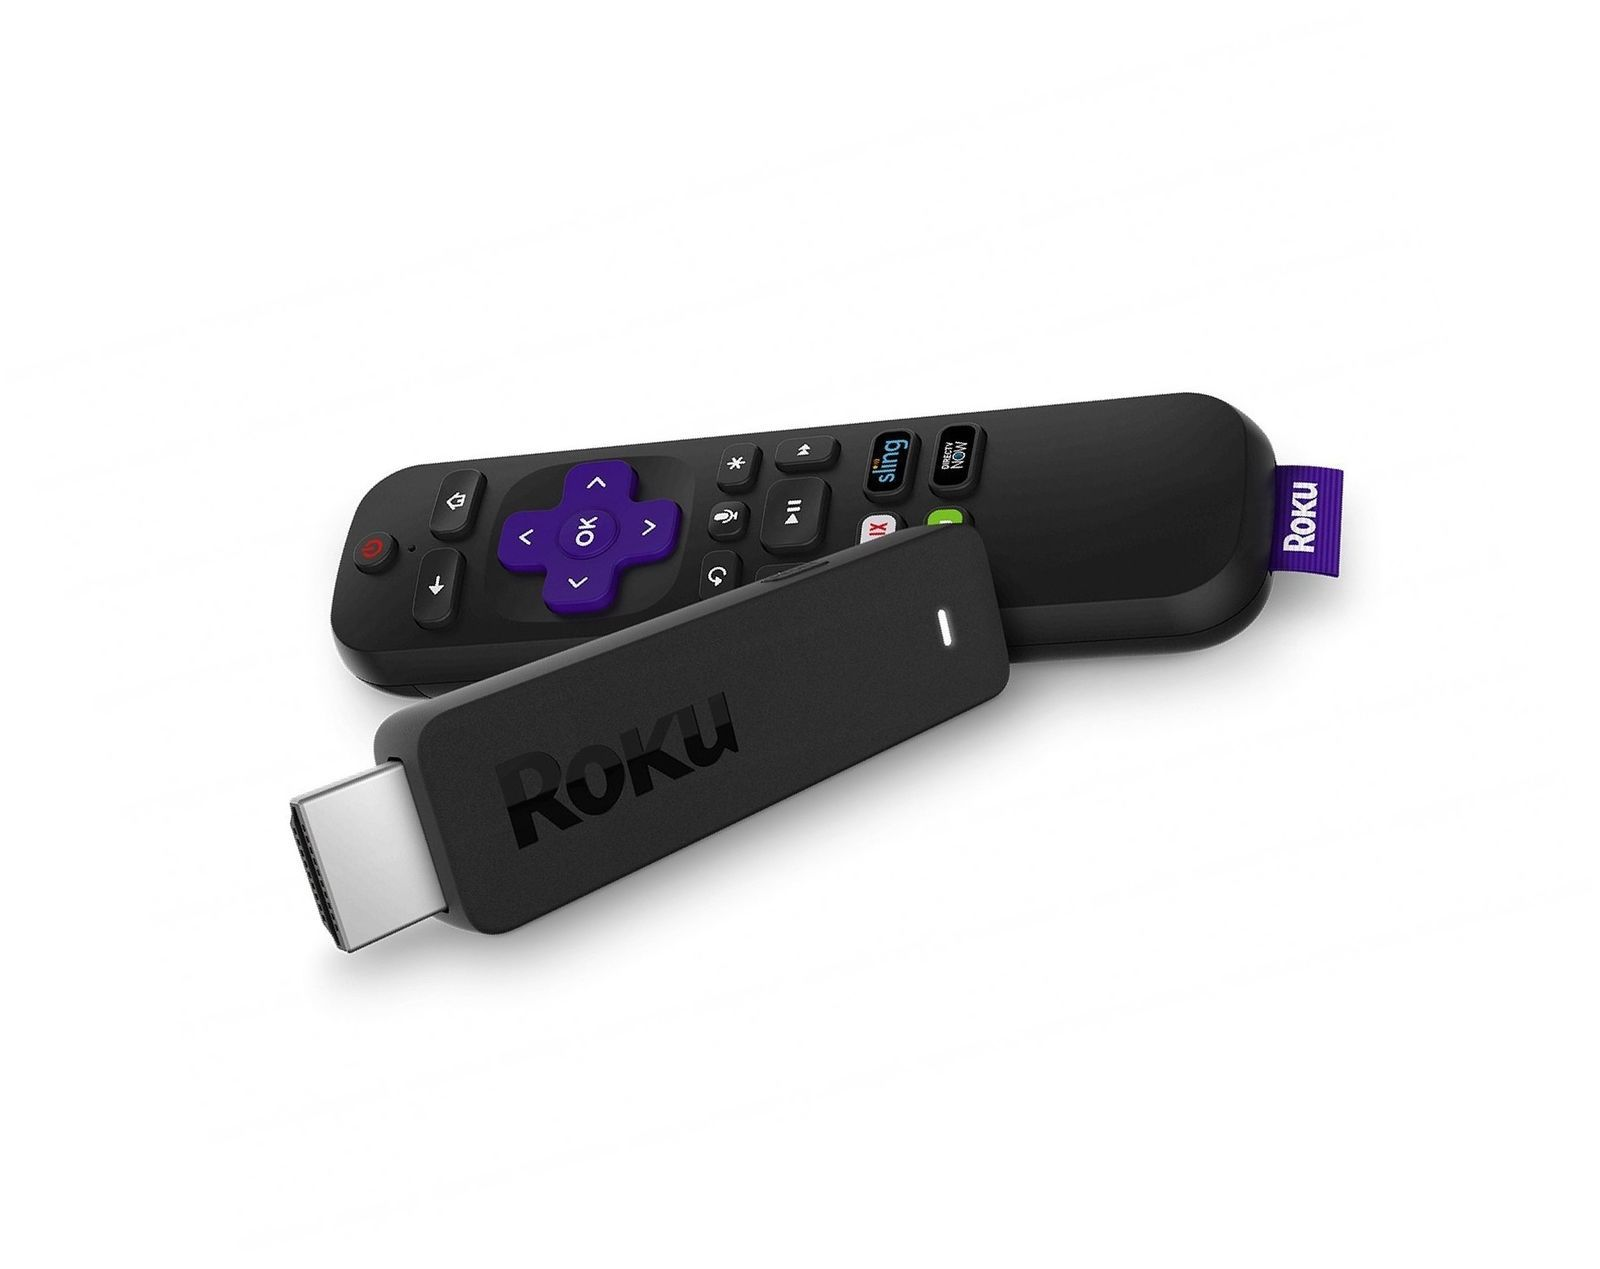 Roku Streaming Stick | Portable, power-packed player with voice remote with T...